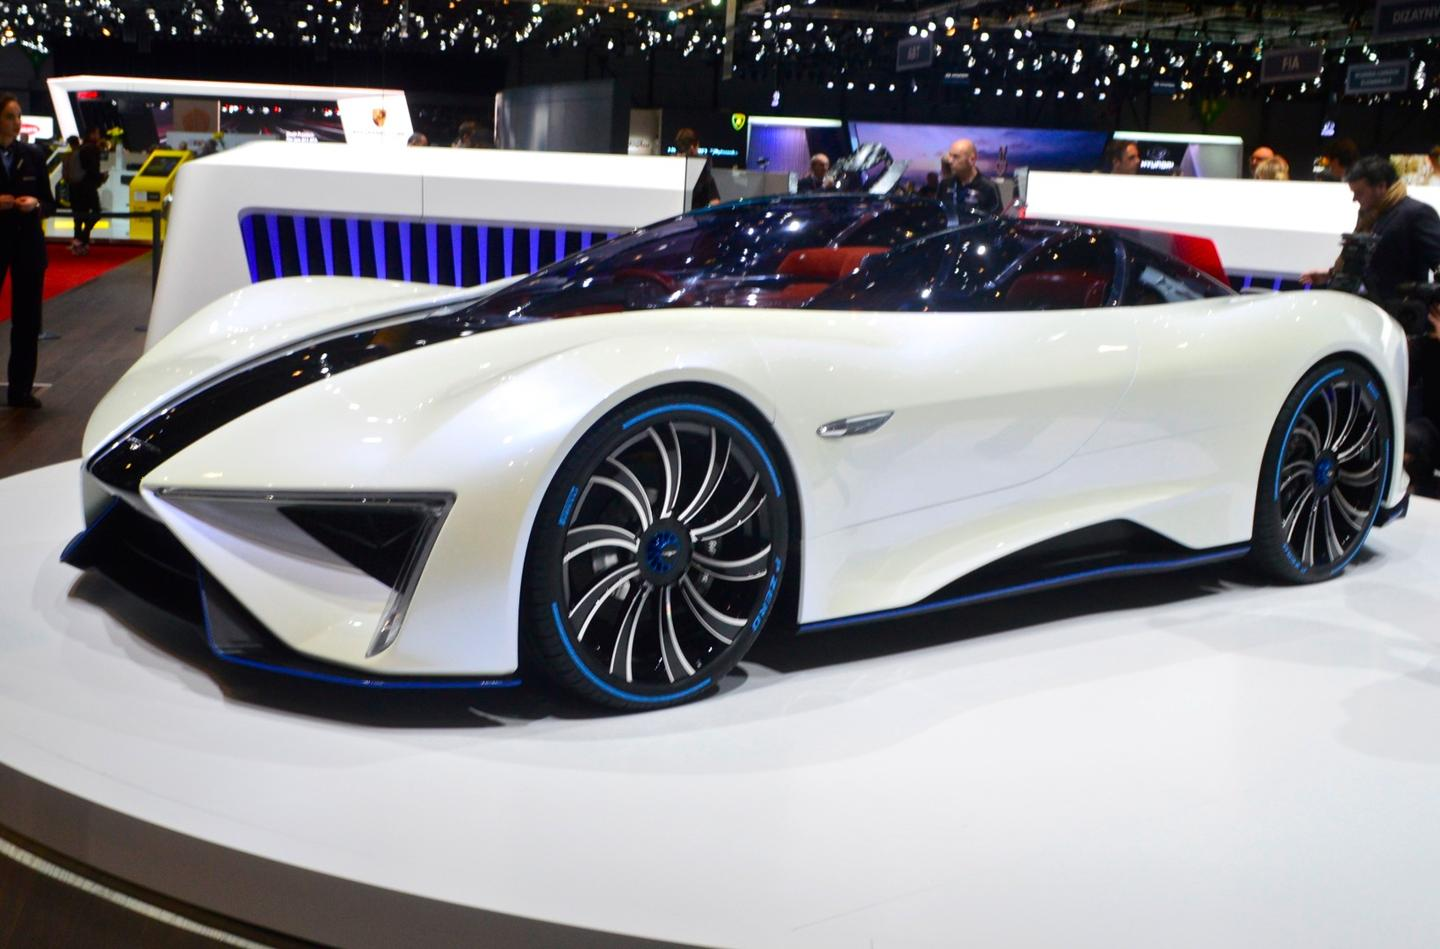 Big wheels, split bodywork and a triple-bubble canopy give the Techrules Ren one of the most distinctive looks at the entire Geneva Motor Show